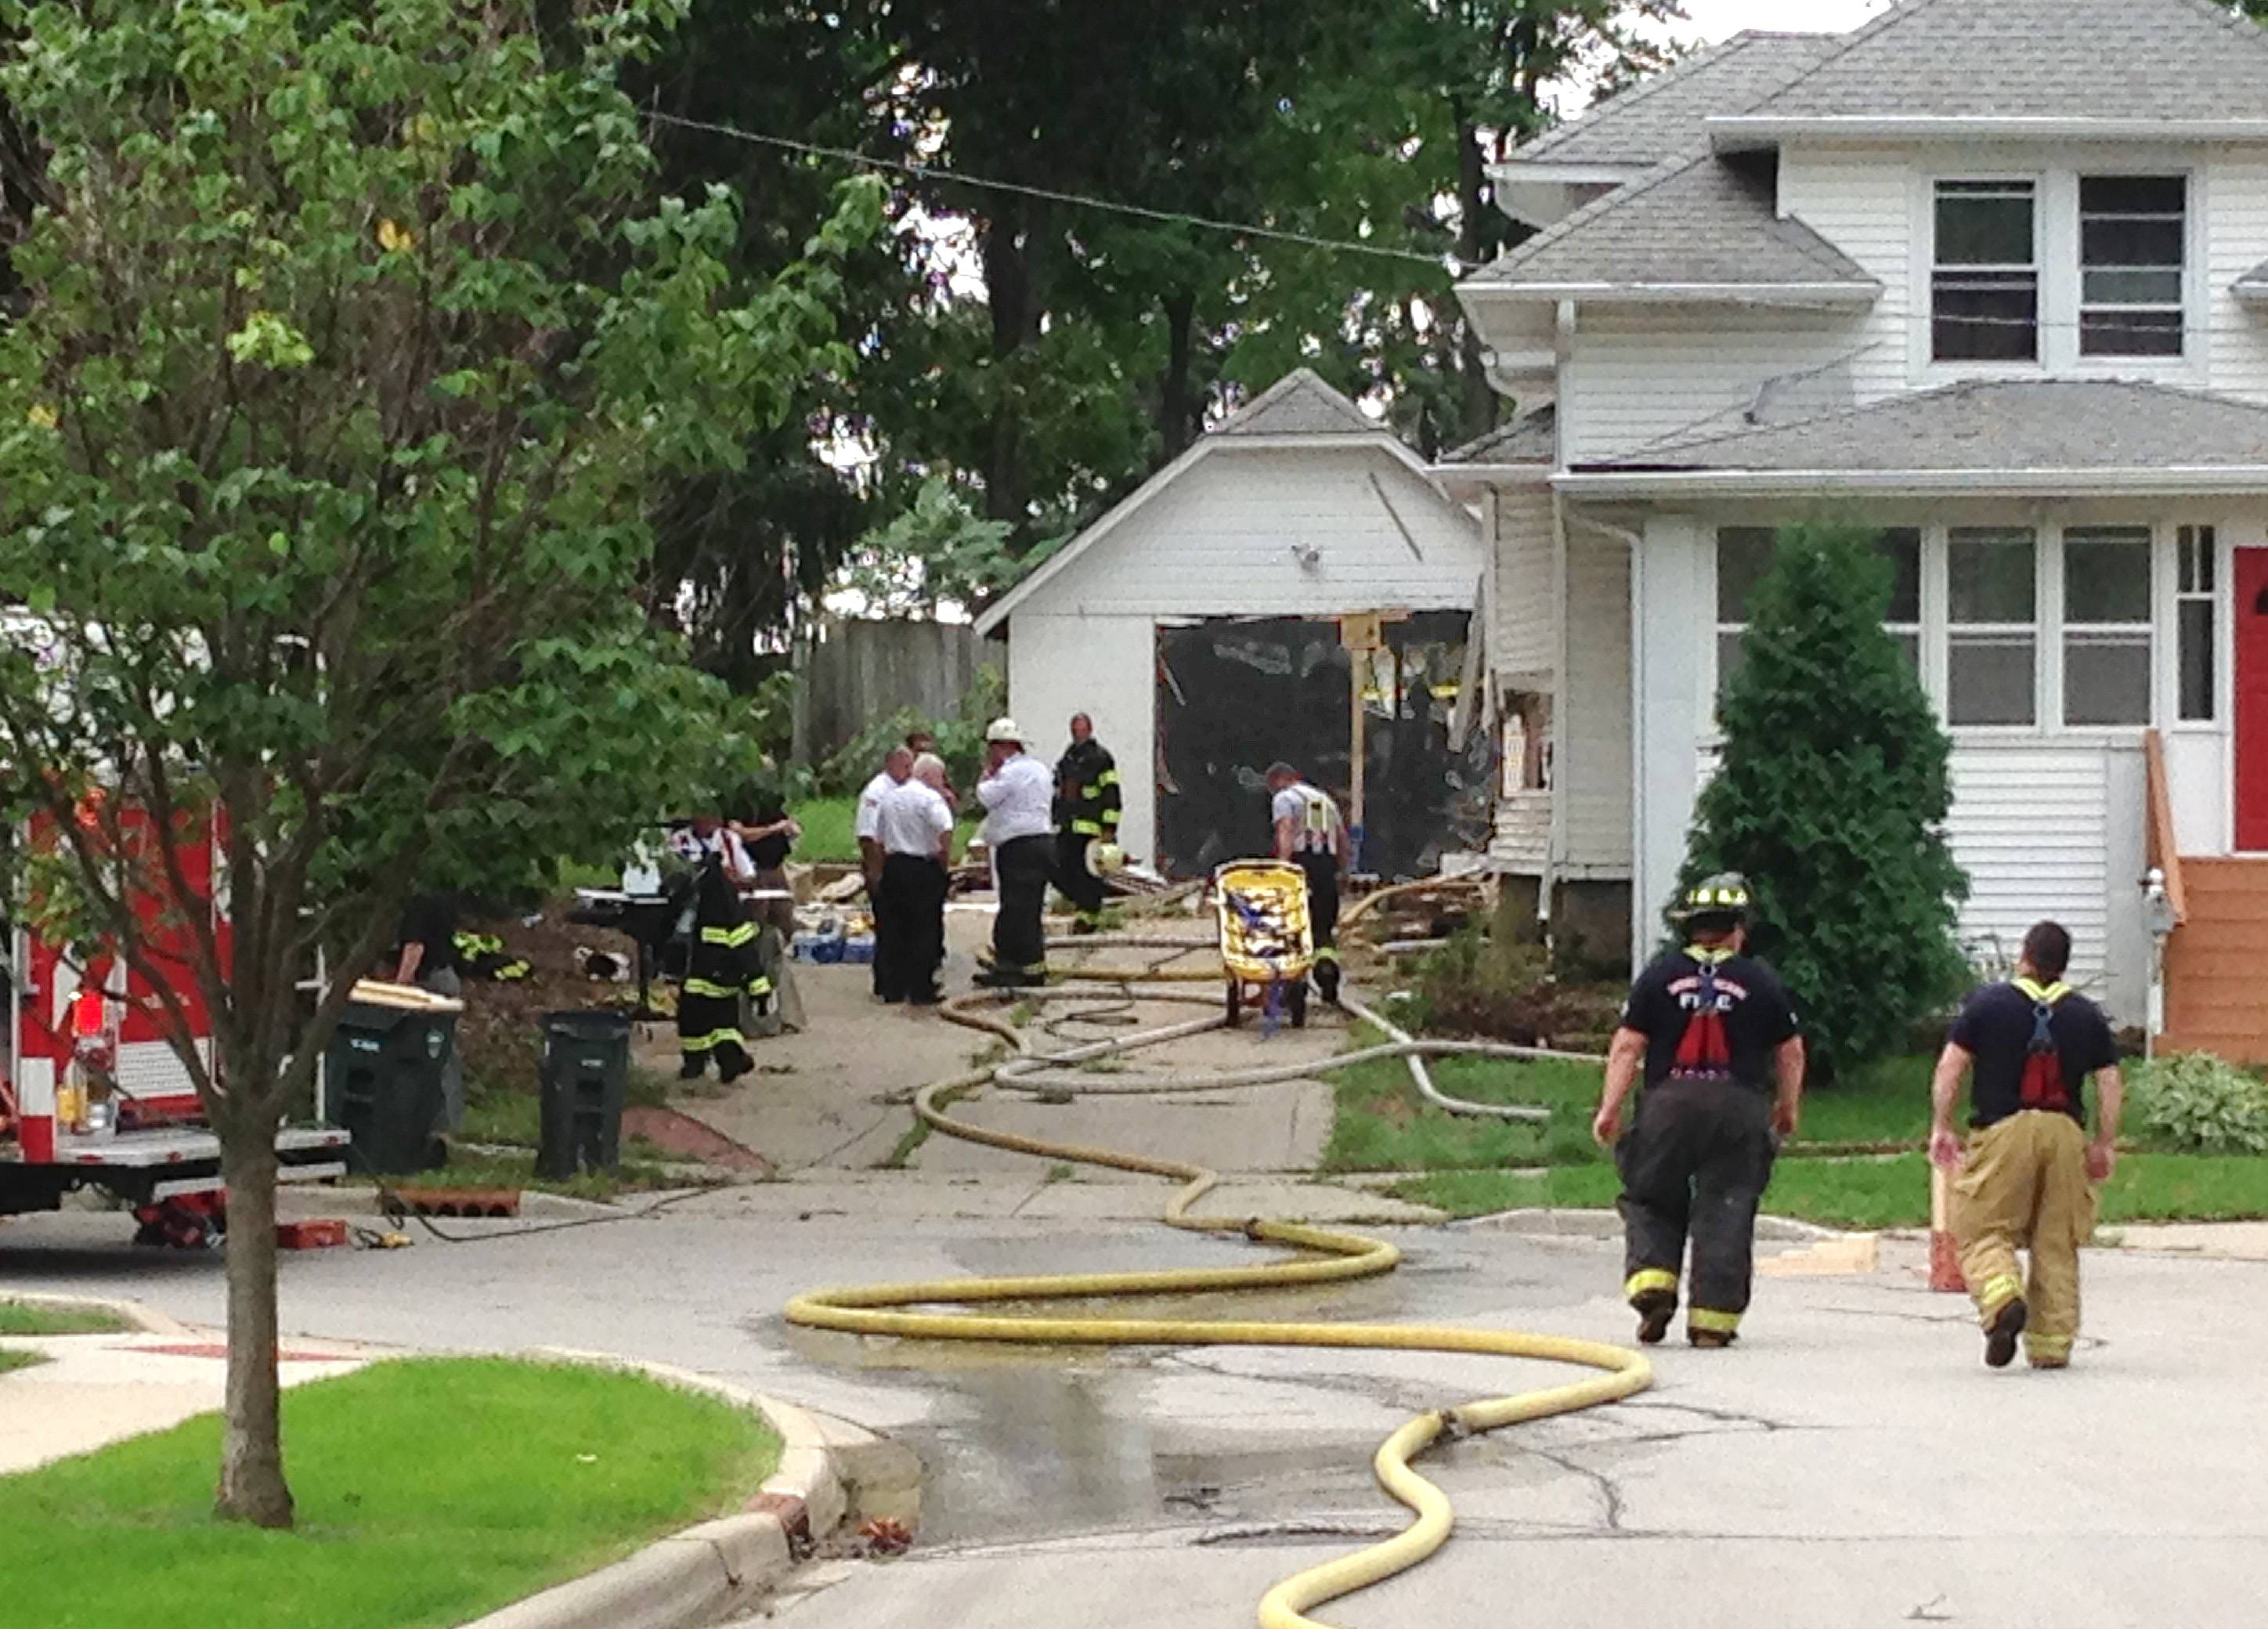 A large number of emergency personnel responded to the 400 block of Colford Avenue in West Chicago Friday morning after a car struck a house and garage. The driver was taken to an area hospital but no other injuries were reported.